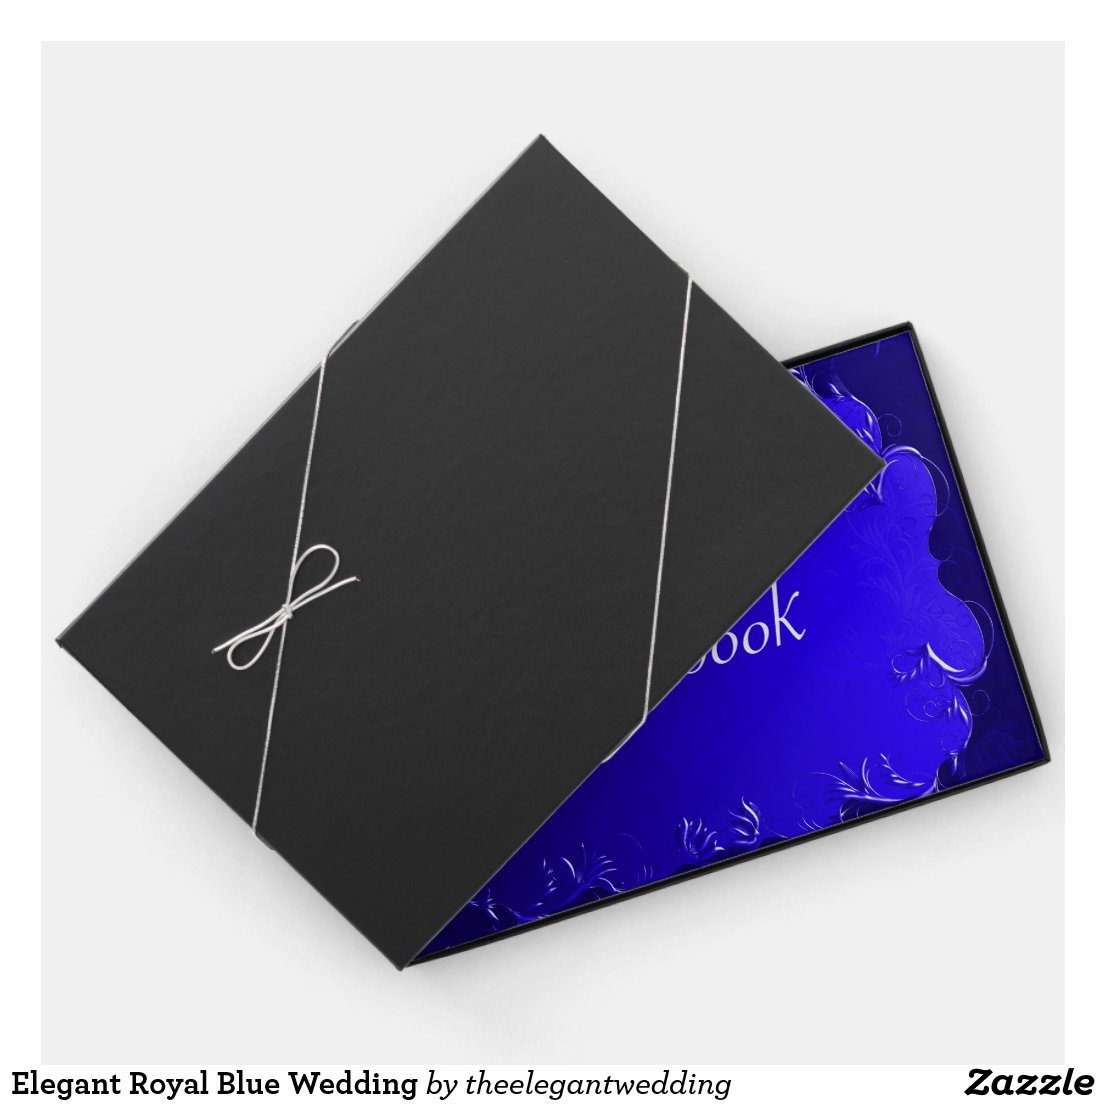 Elegant Royal Blue Wedding Guest Book